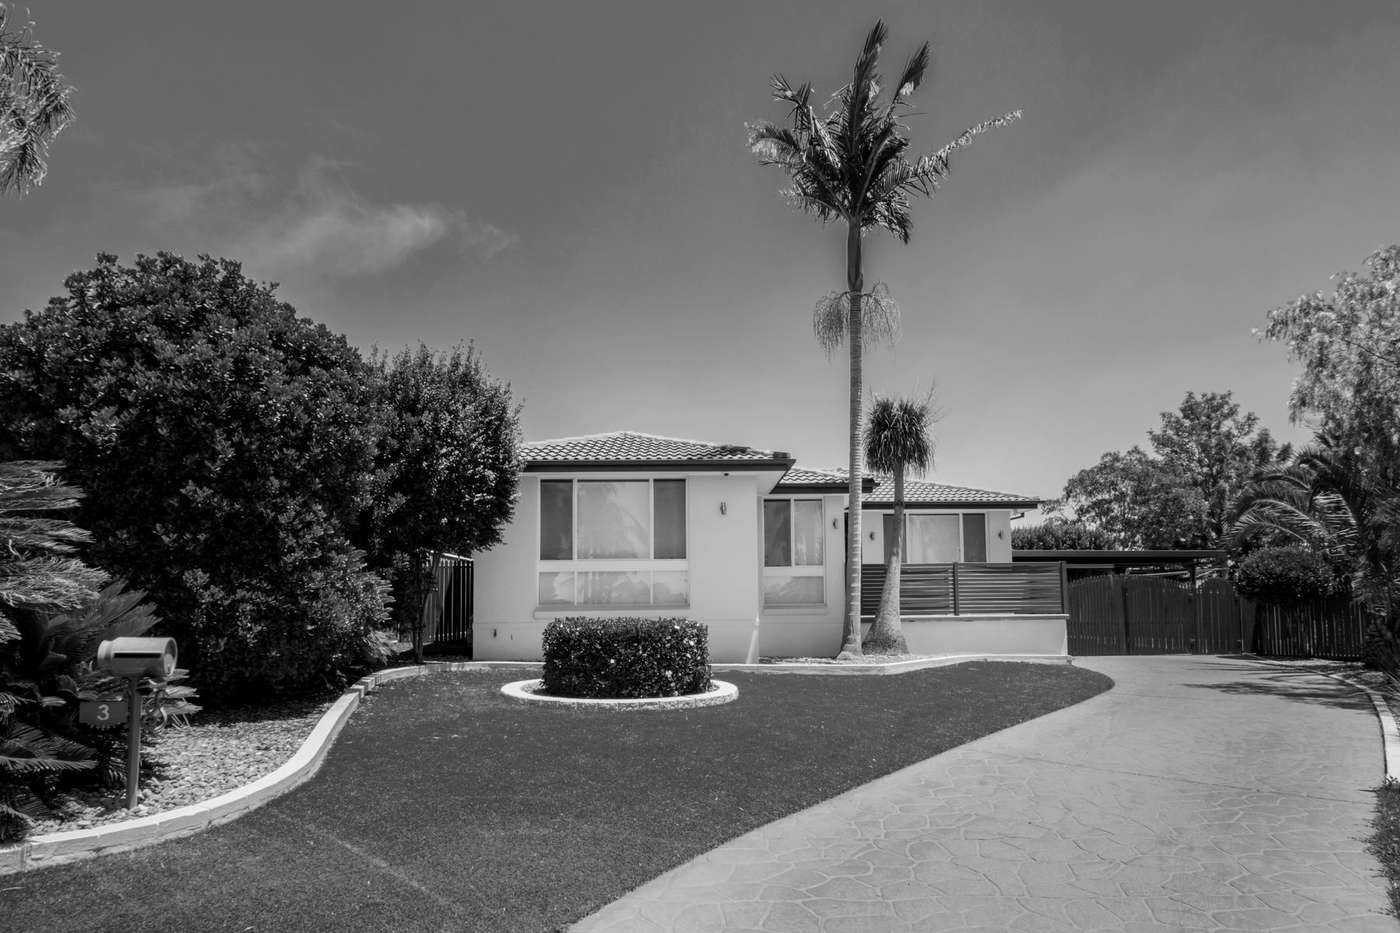 Main view of Homely house listing, 3 Hay Close, St Clair, NSW 2759